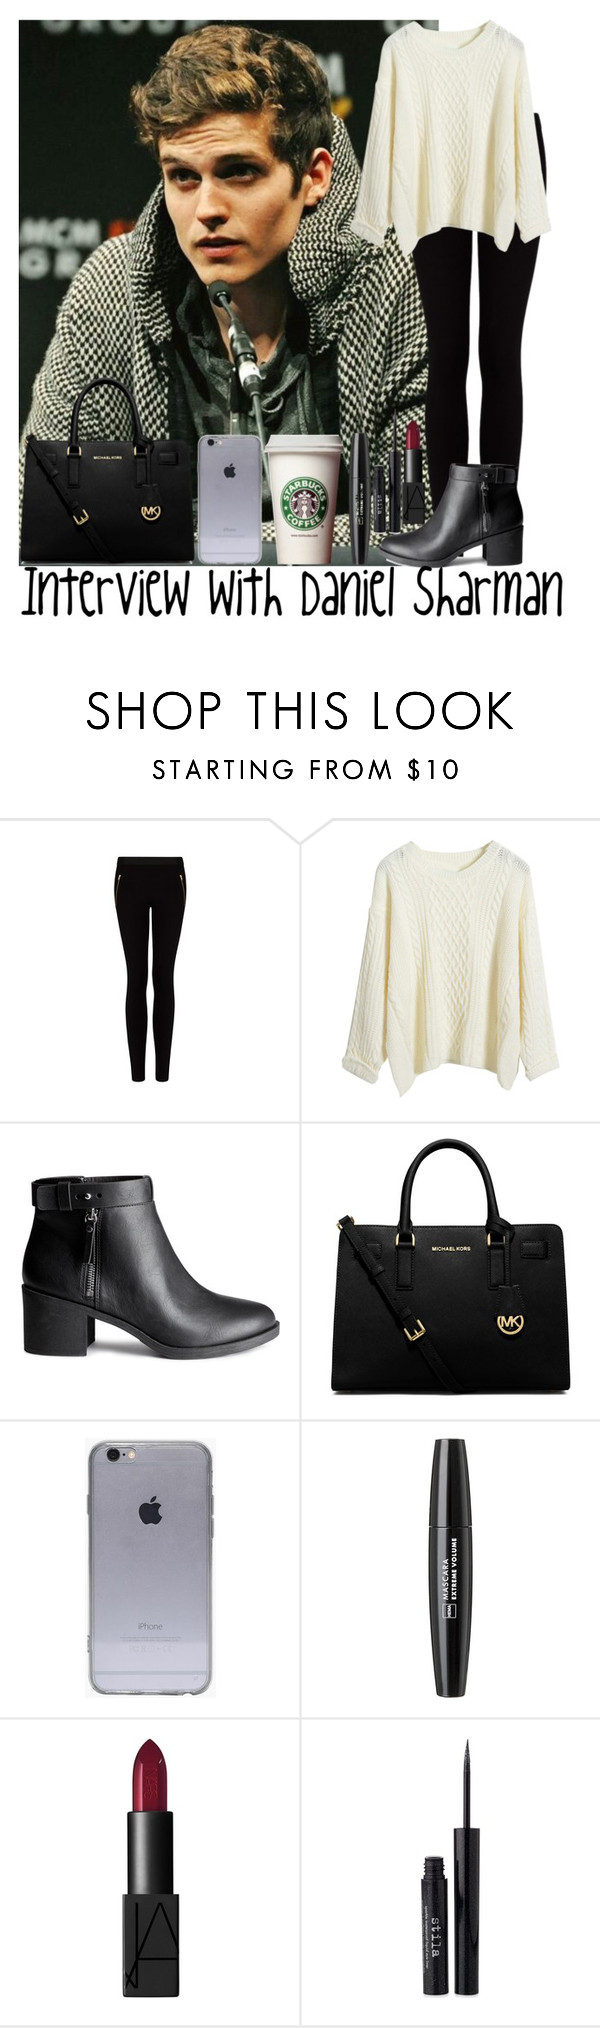 """Interview with Daniel Sharman"" by diirectiioner69 ❤ liked on Polyvore featuring MANGO, H&M, Michael Kors and Stila"